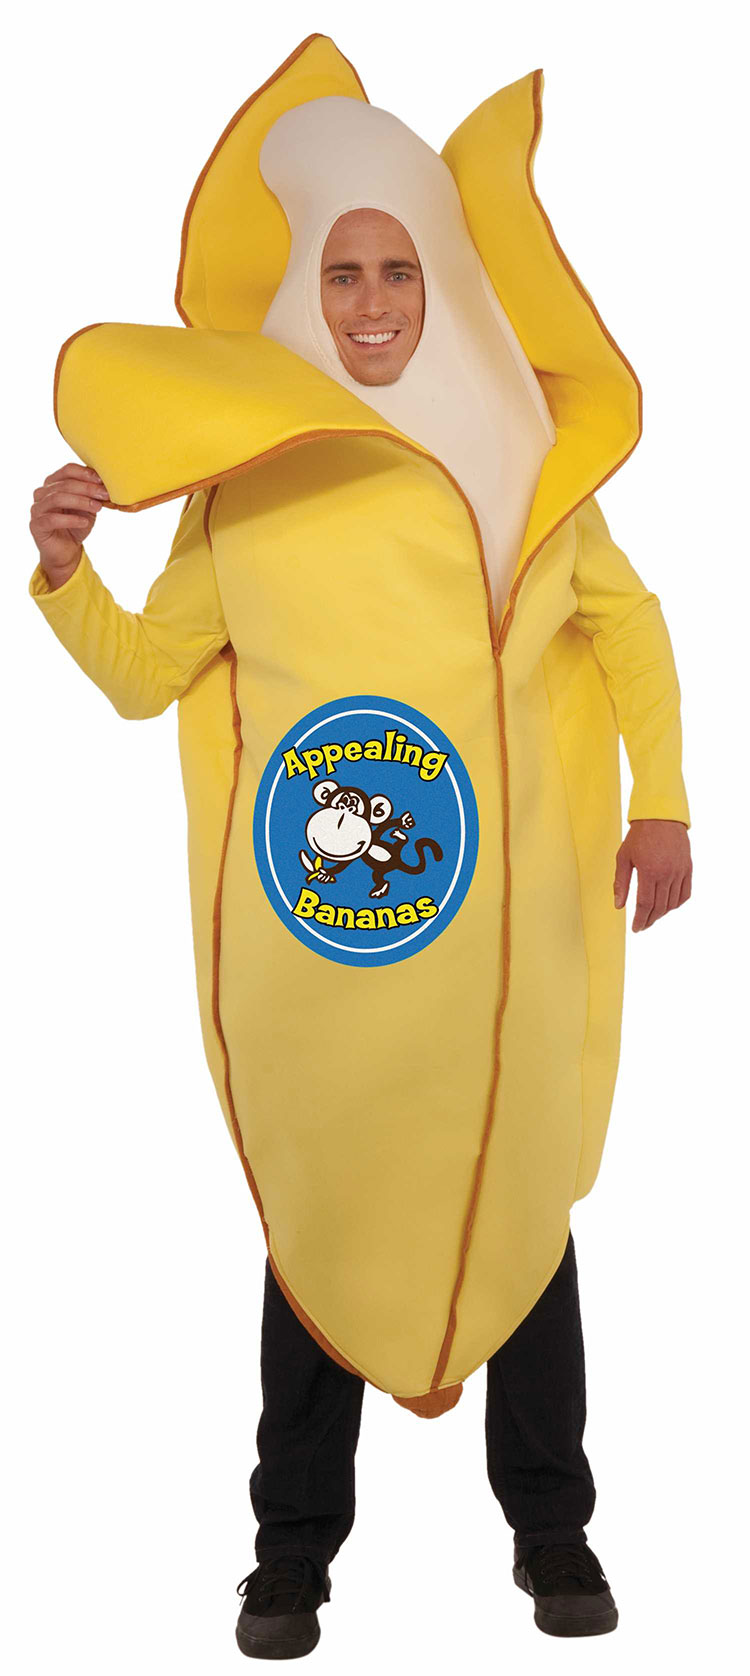 Appealing Banana Costume